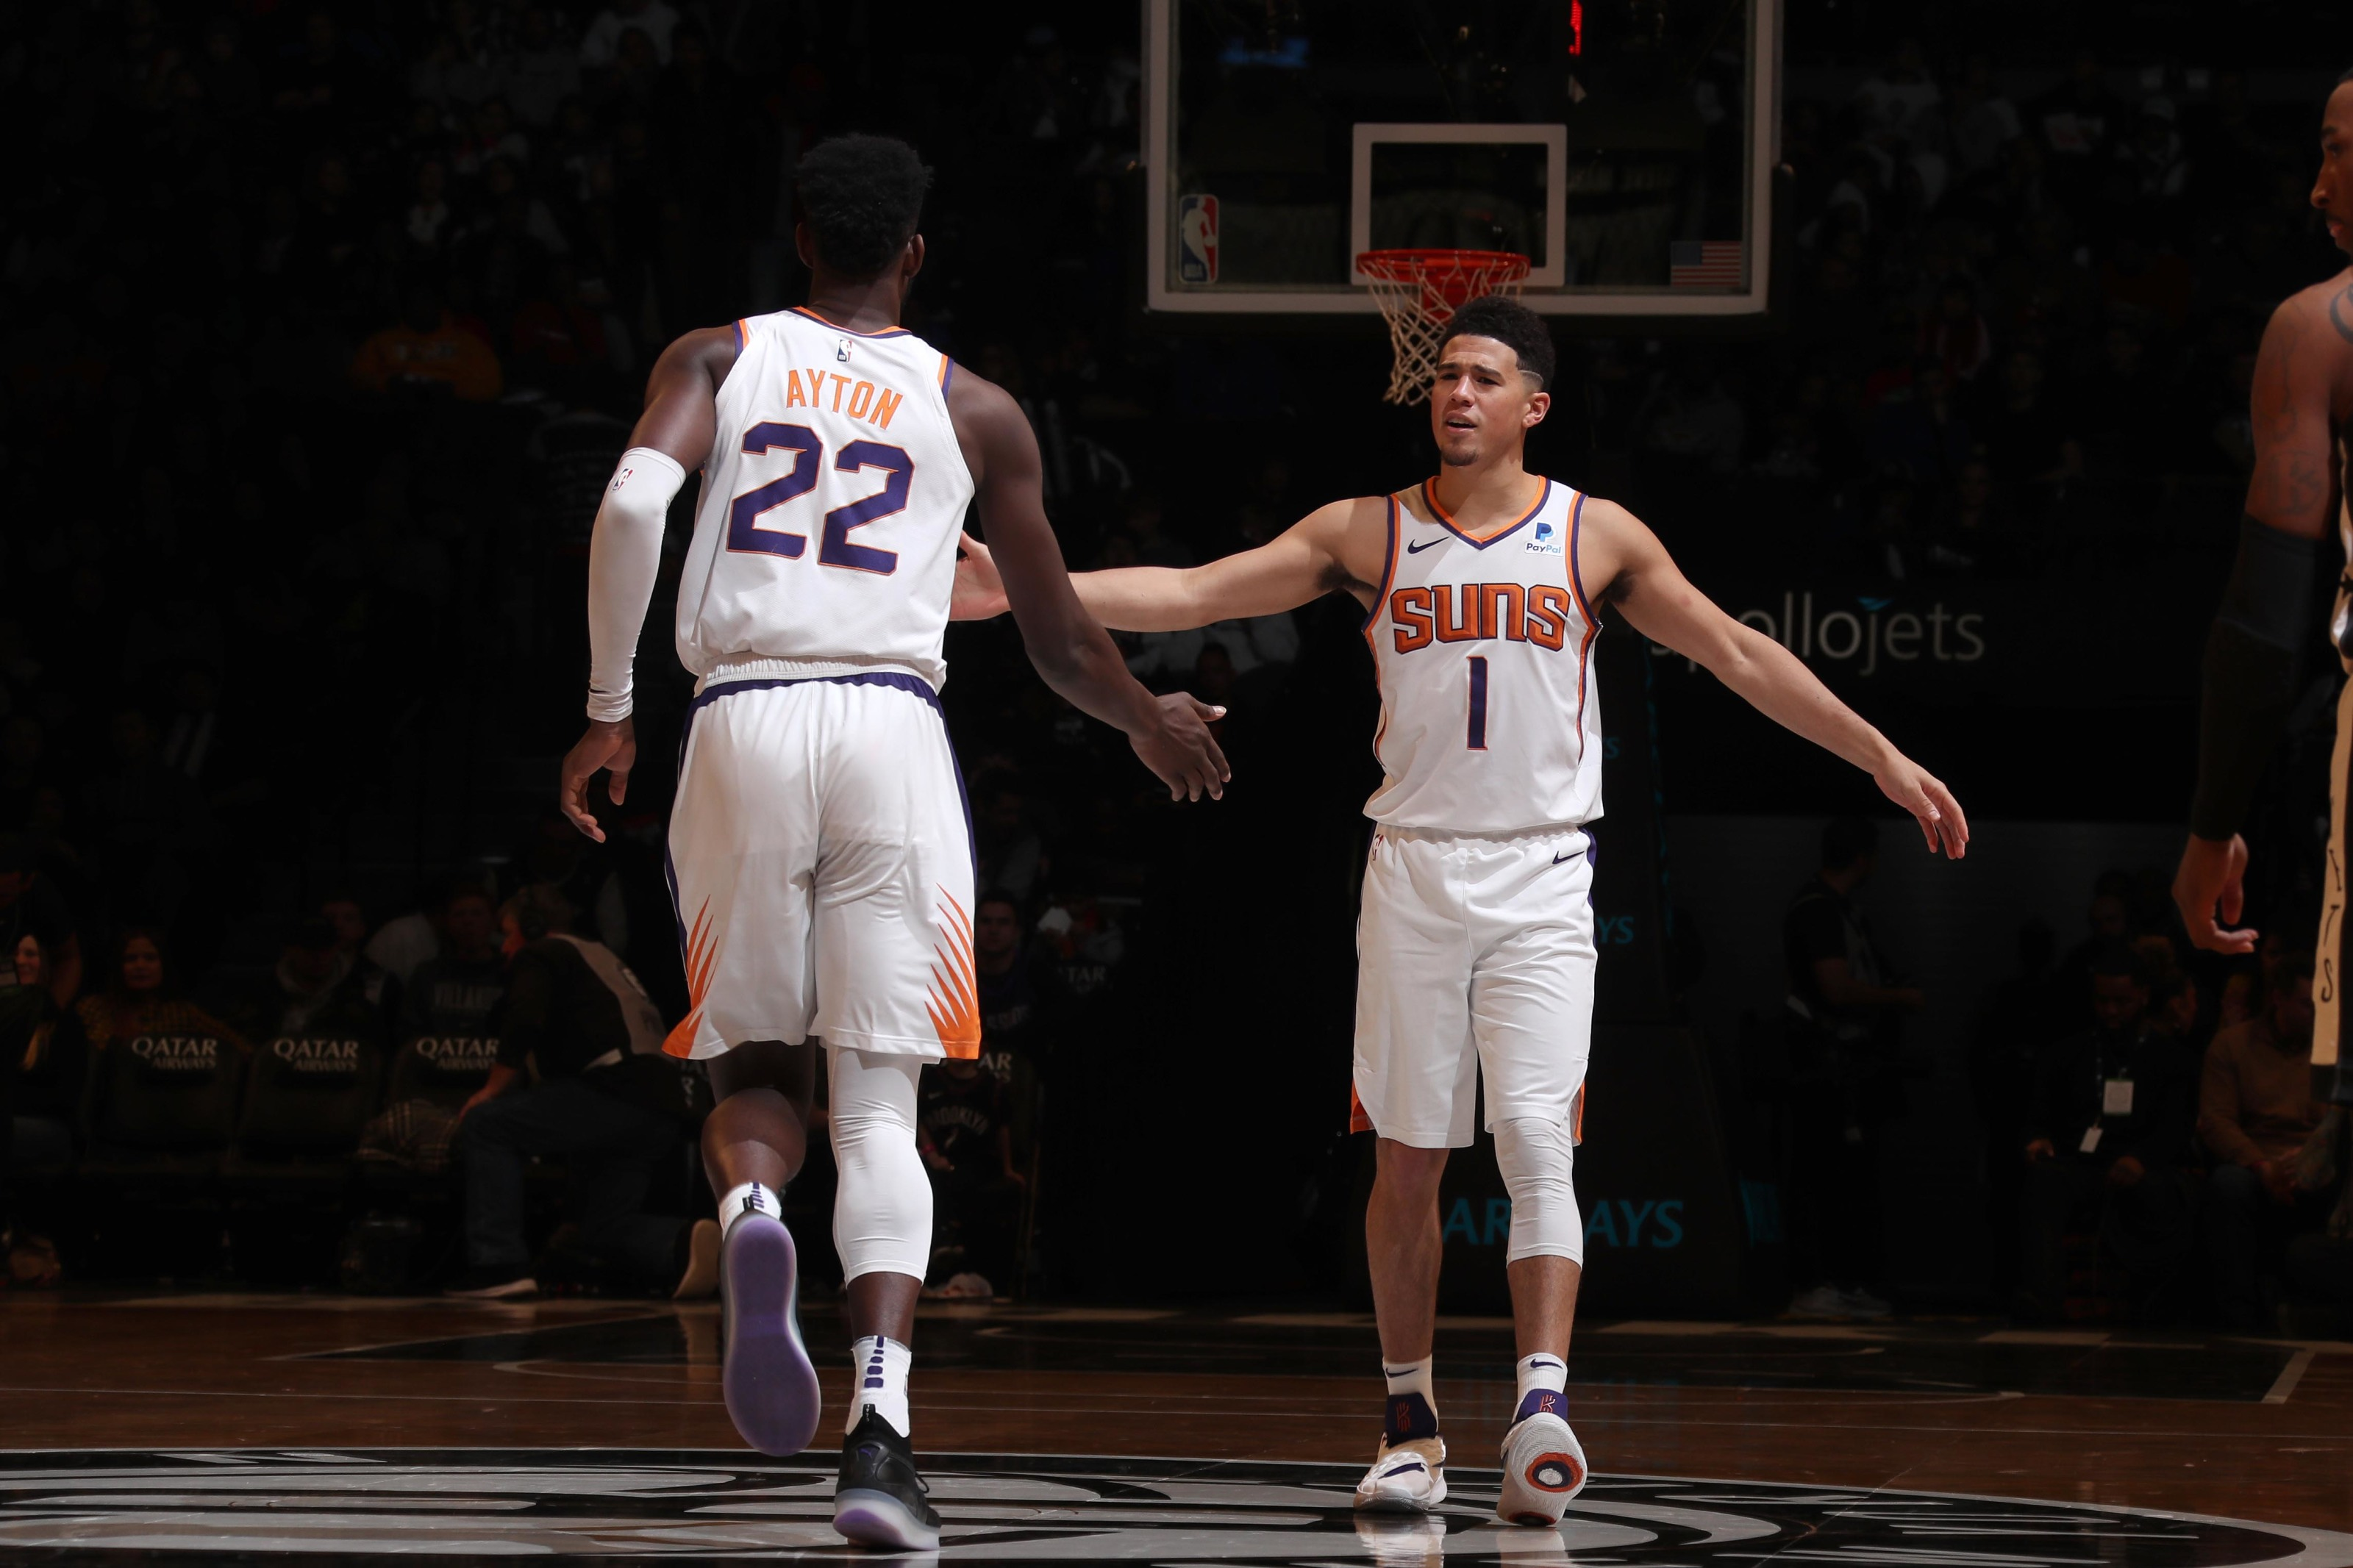 Devon Booker and Deandre Ayton need to learn more of the Mamba Mentality